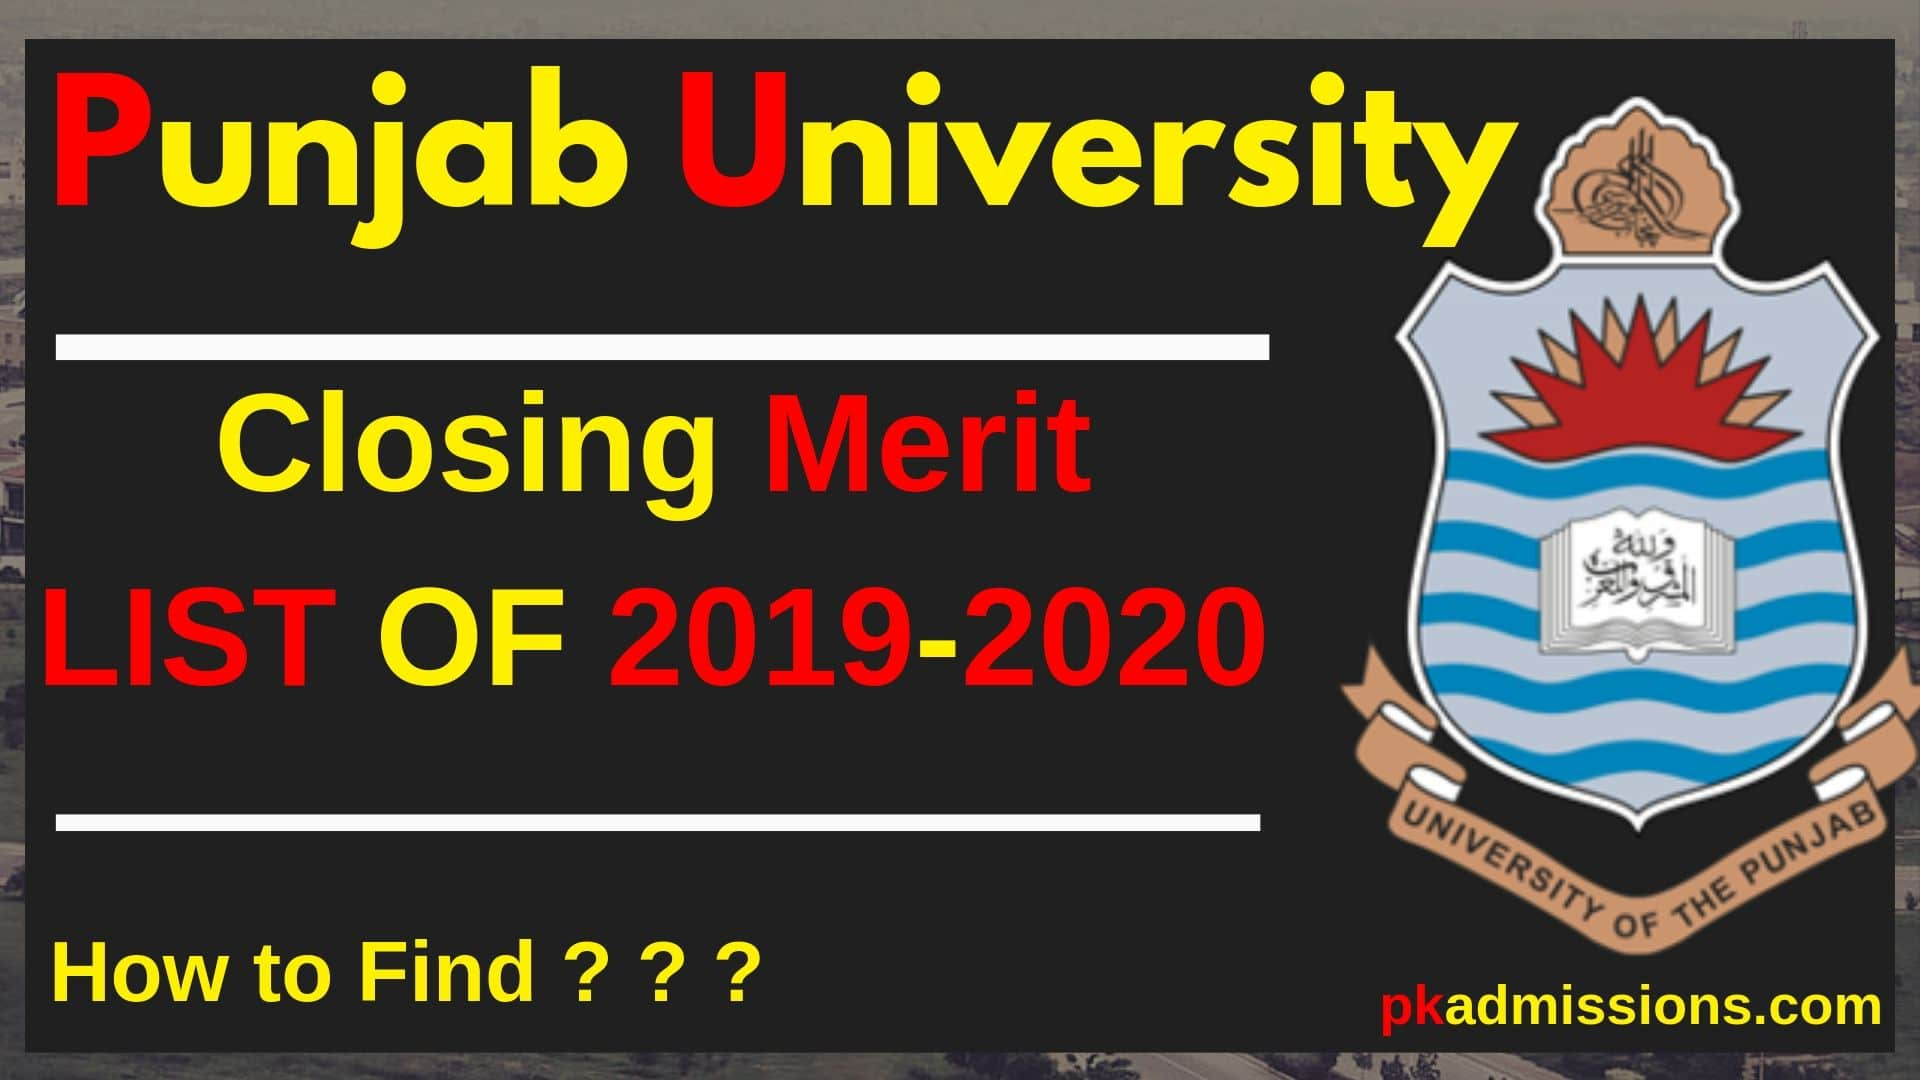 closing merit list of punjab univerisity 2019 - 2020